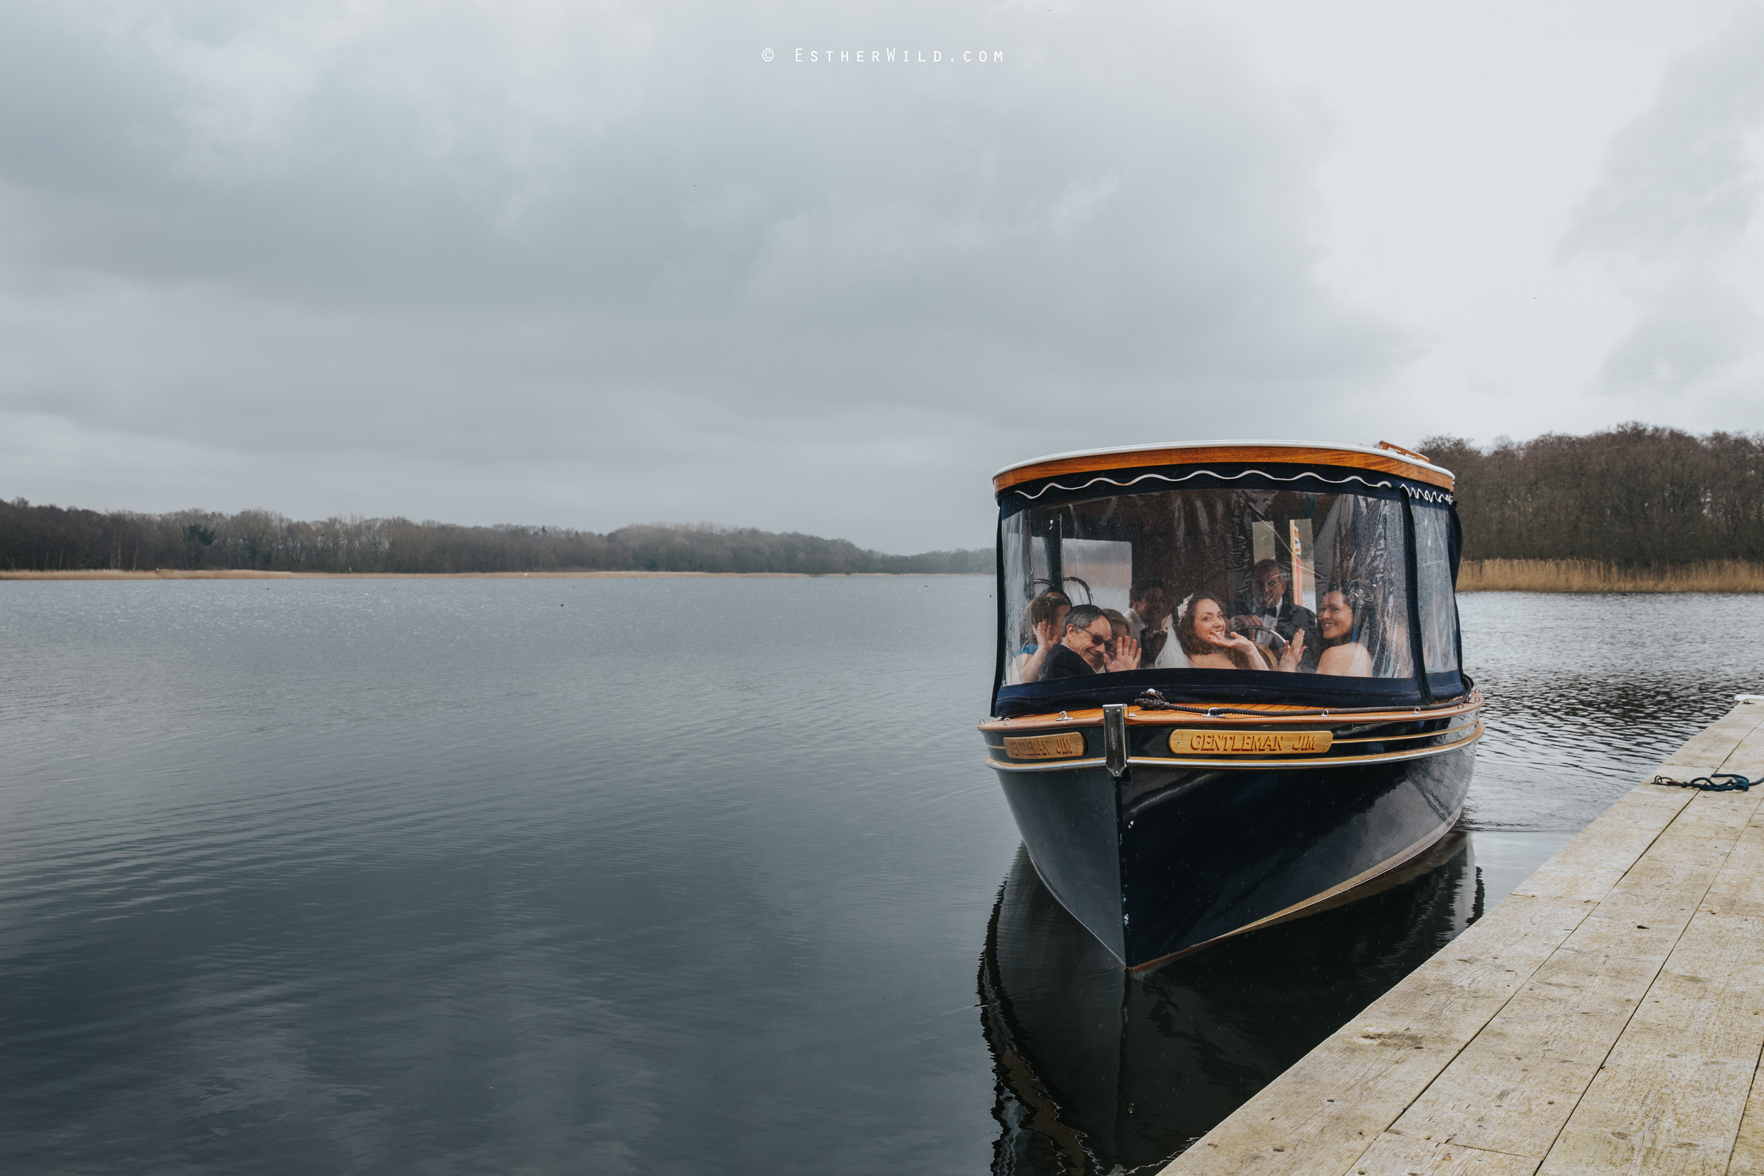 The_BoatHouse_Wedding_Venue_Ormesby_Norfolk_Broads_Boat_Wedding_Photography_Esther_Wild_Photographer_IMG_0805.jpg